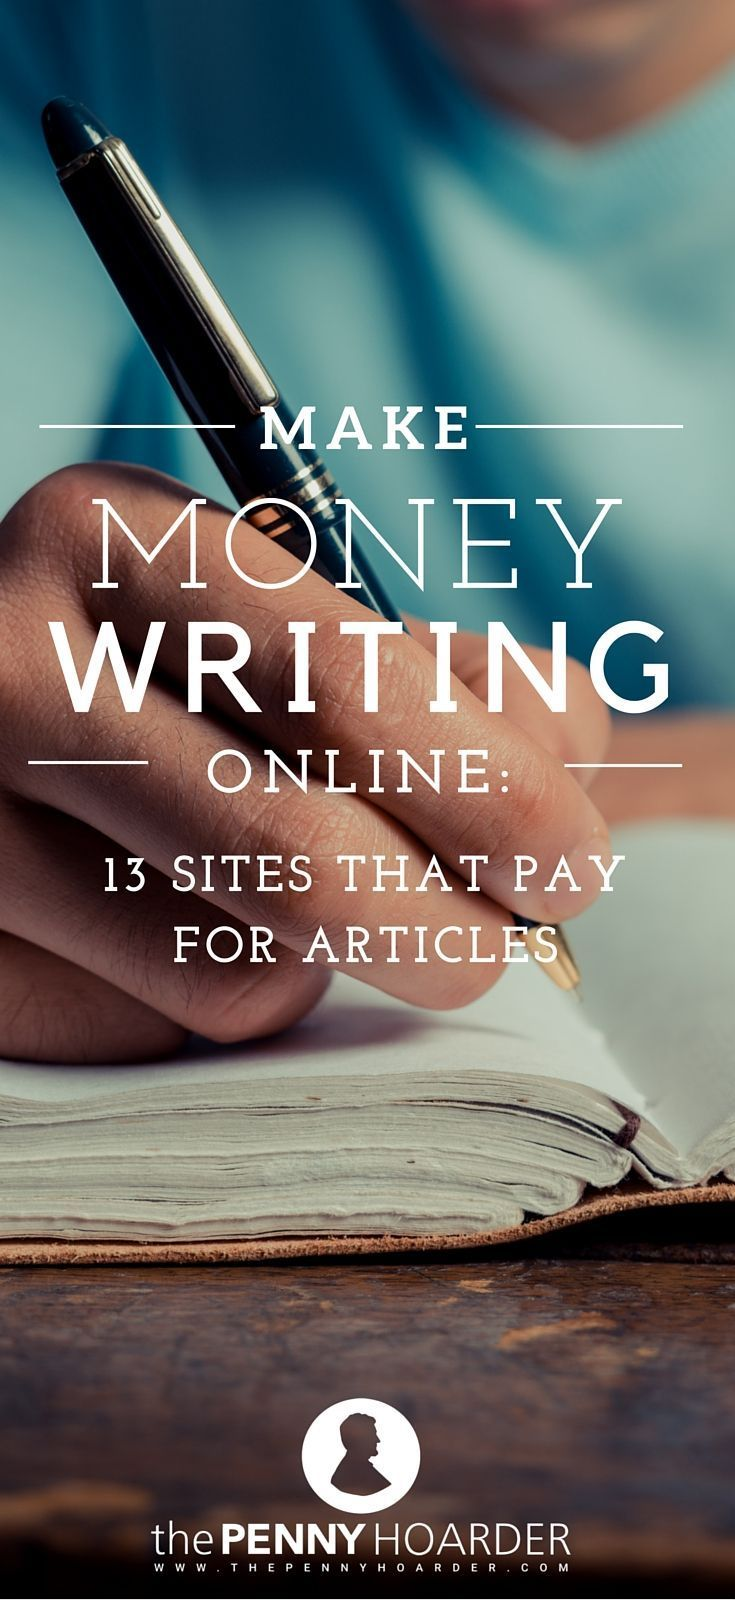 best ideas about writing sites creative writing want to get paid to write we ve put together a quick list of sites that pay for articles from those that pay pennies per click to the more lucrative